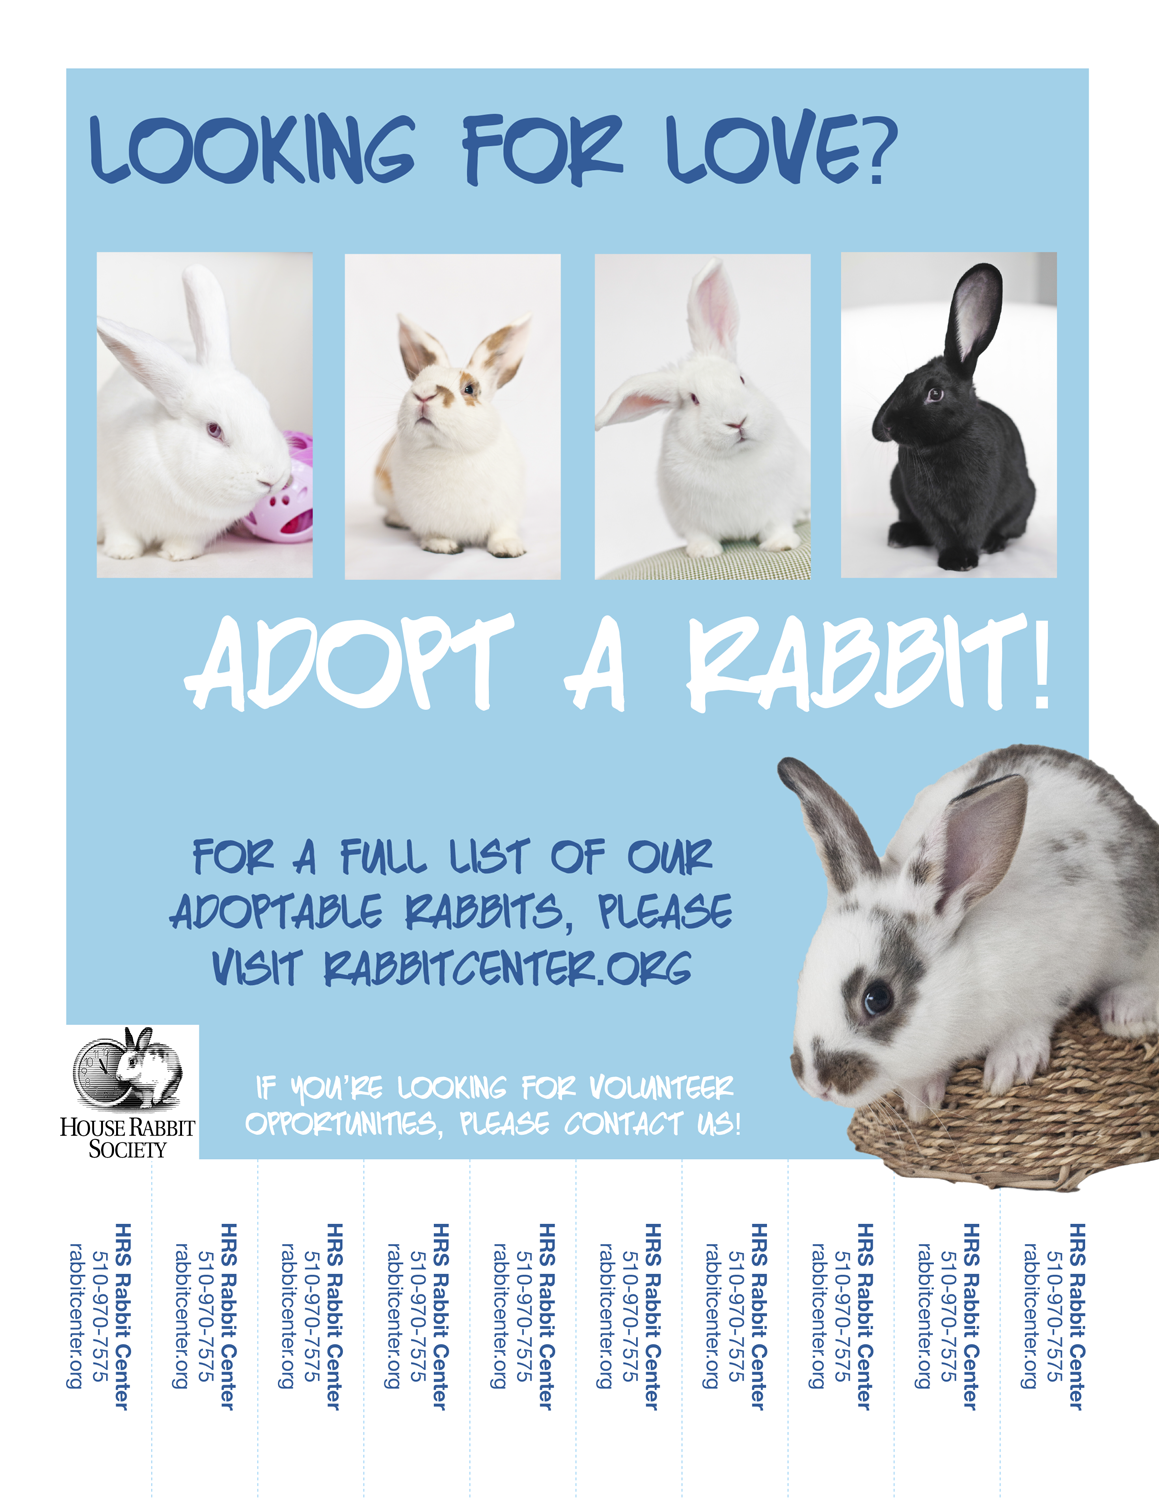 volunteer house rabbit society adoption and education center team create online print listings for adoptable rabbits and upcoming events at hrs graphic design for fliers and handouts distributing flyers